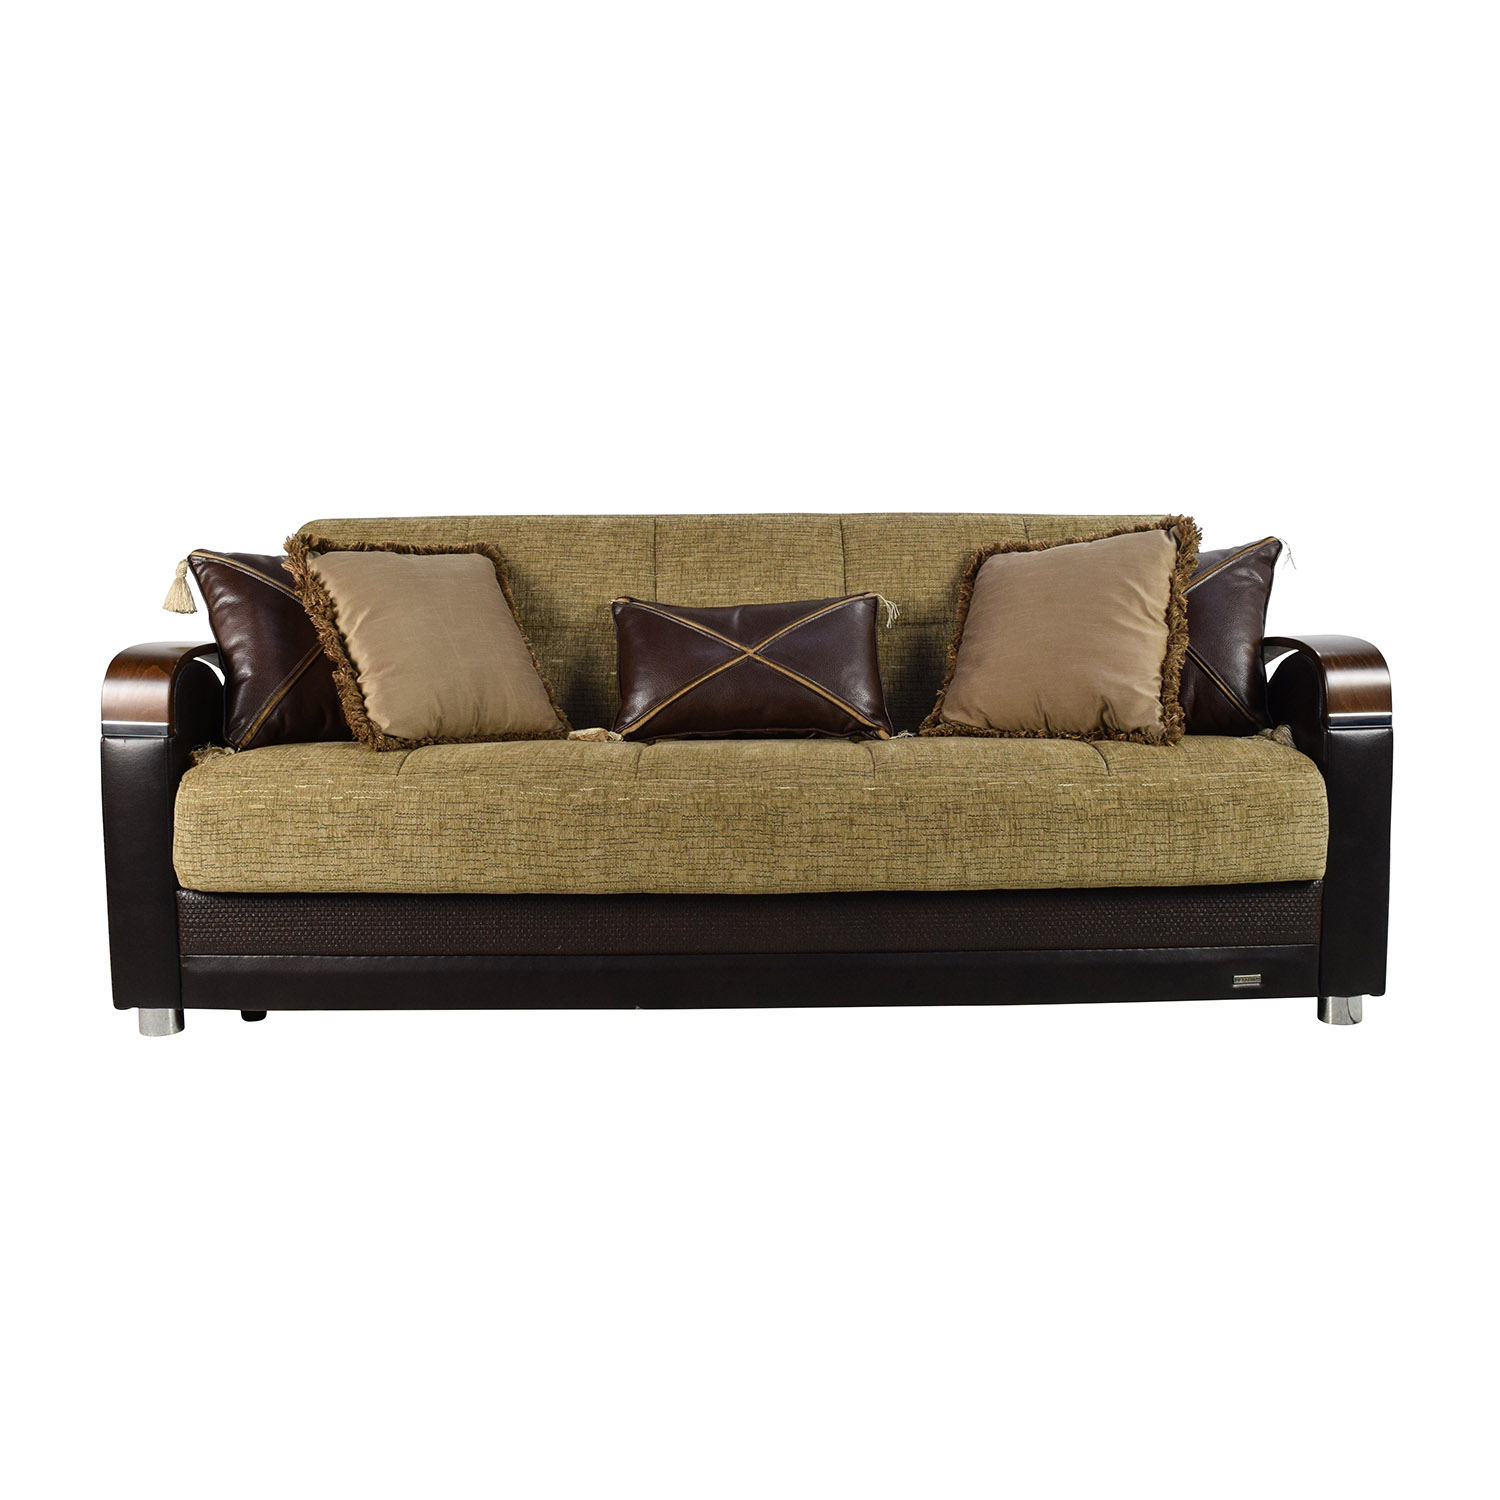 71 Off Bellona Bellona Luna Gold And Brown Sofa Sleeper With